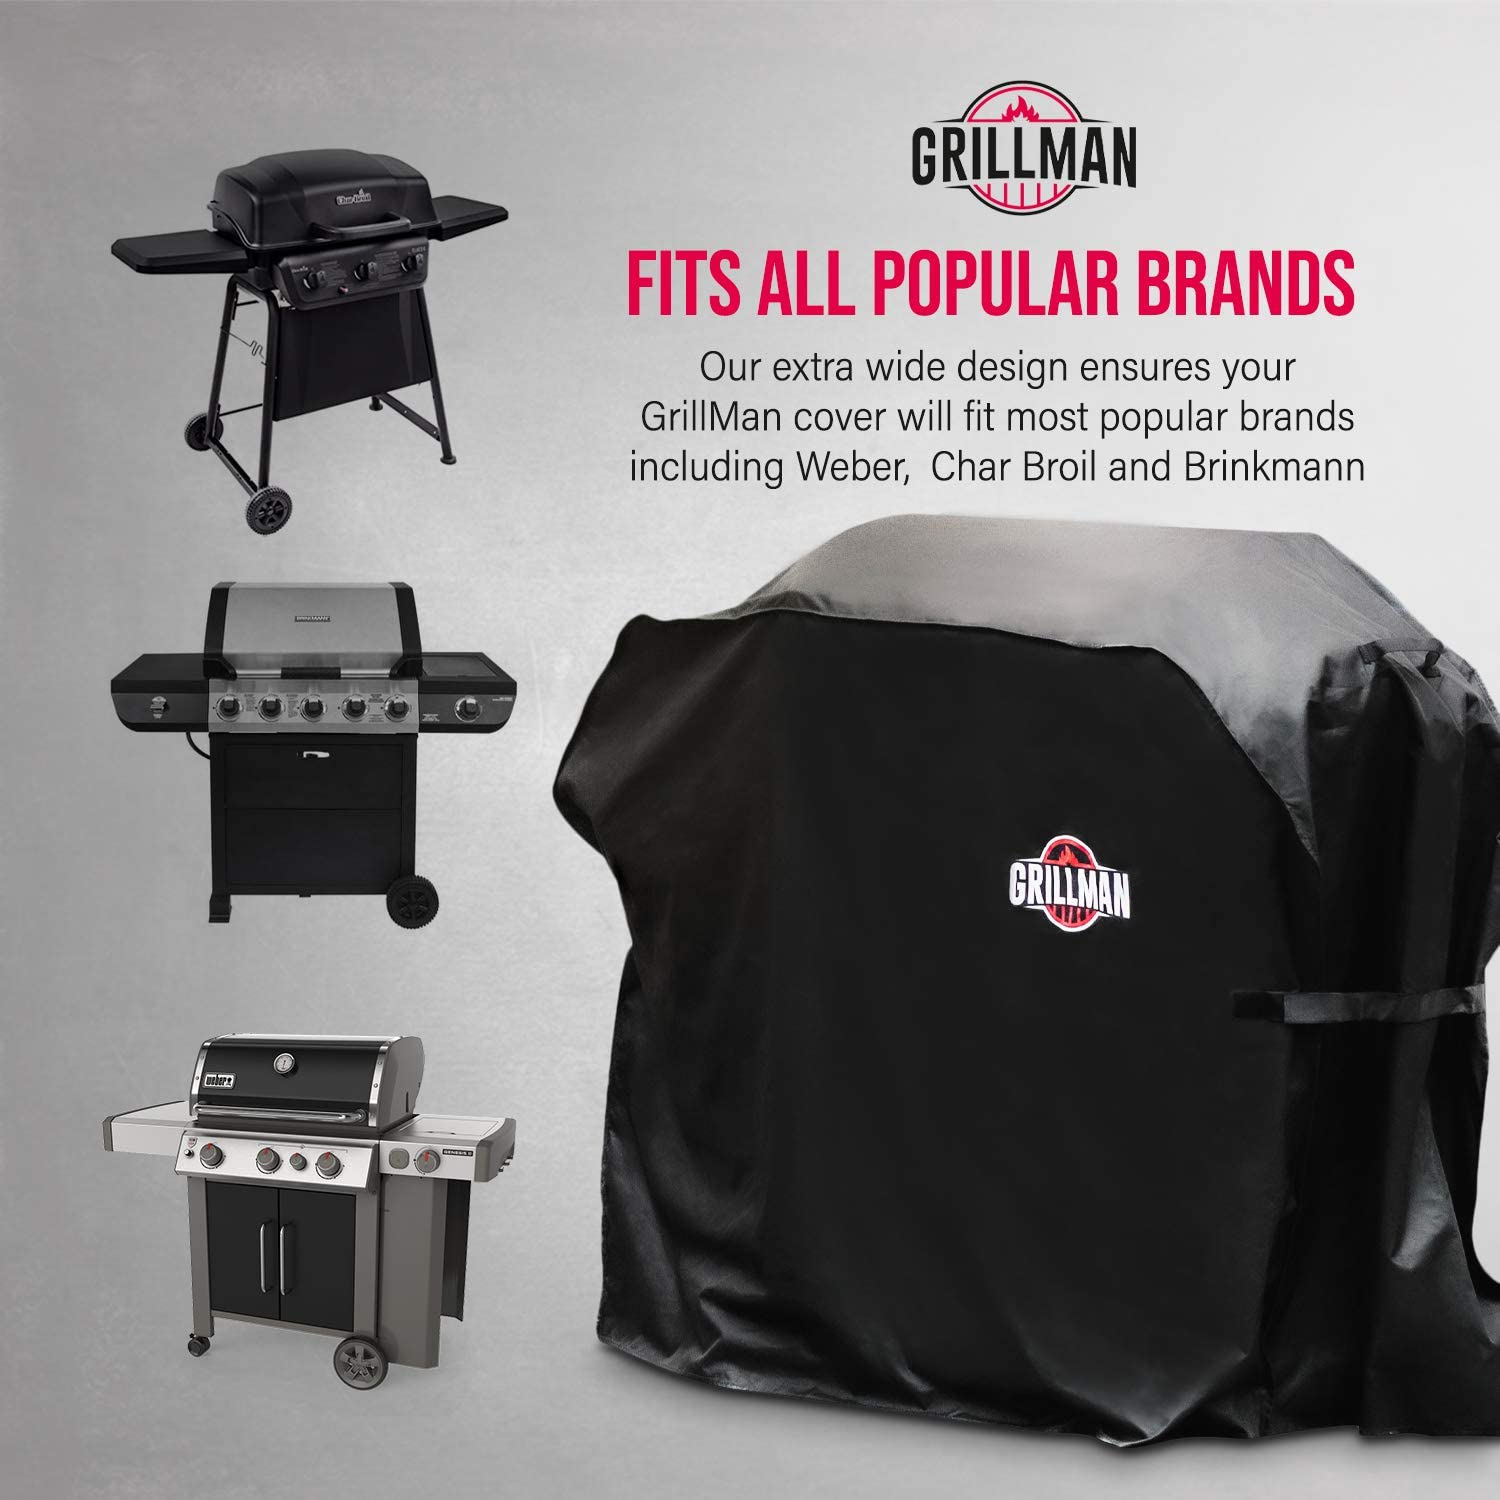 Grillman Premium Bbq Grill Cover Heavy Duty Gas Grill Cover For Weber Brinkmann Char Broil Etc Rip Proof Uv Water Resistant 64 Inch 163 Cm Black Amazon Co Uk Garden Outdoors